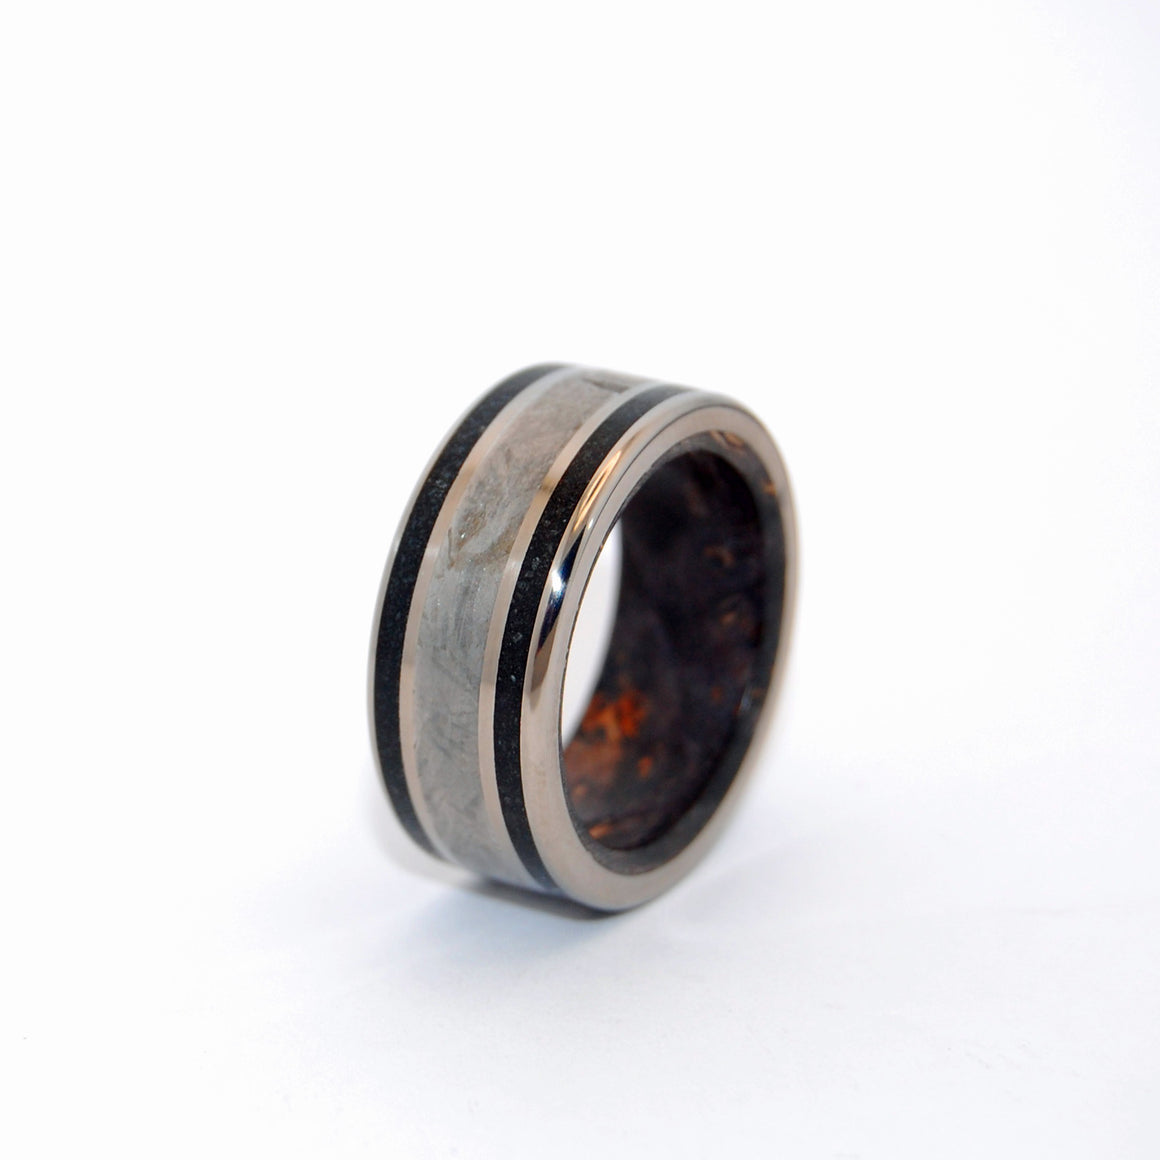 Men's Wedding Rings - Handcrafted Meteorite and Titanium Ring | THE RESOLUTE - Minter and Richter Designs